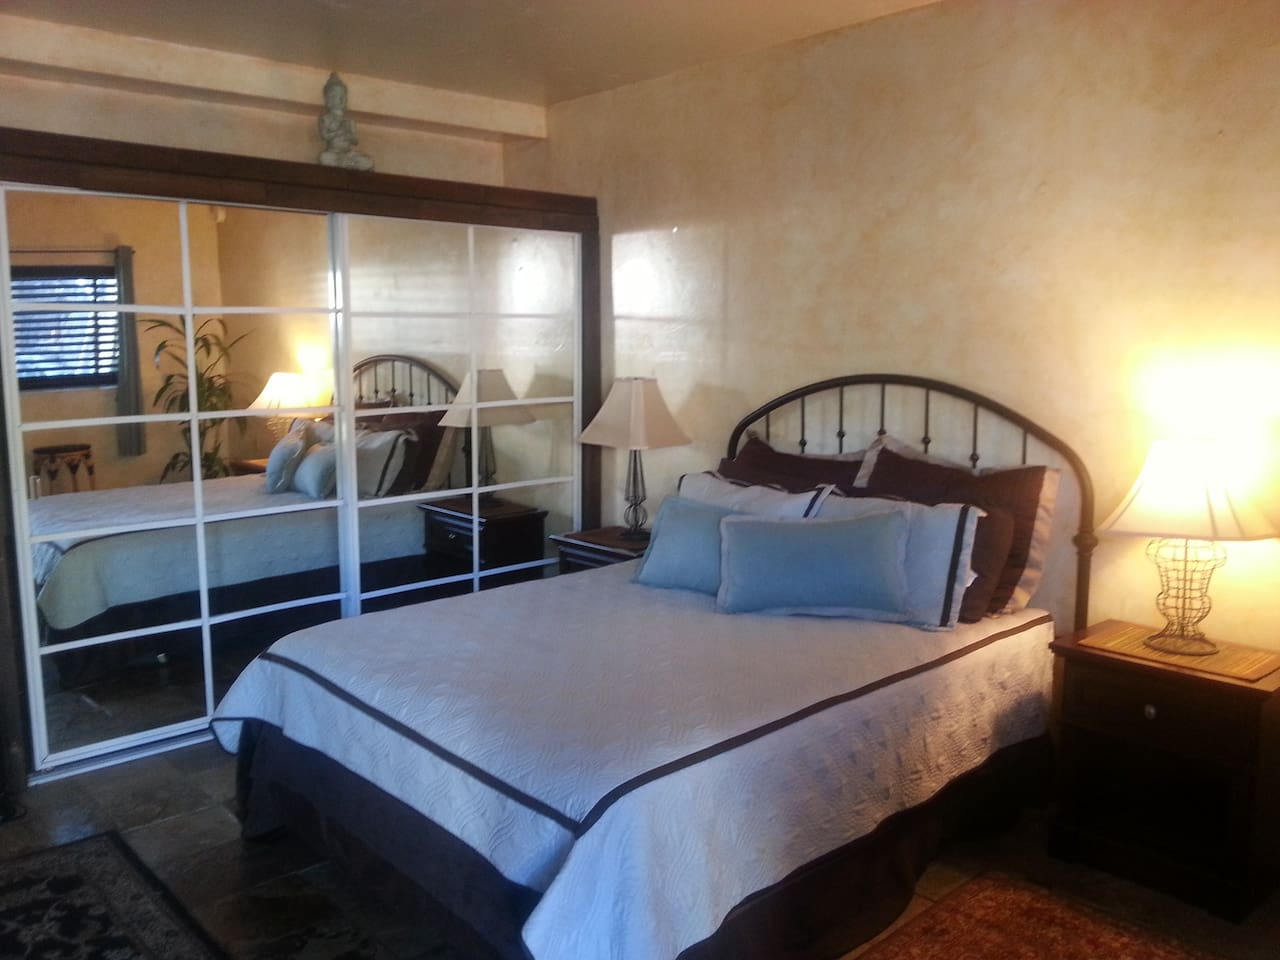 Bed Space and Large Closet